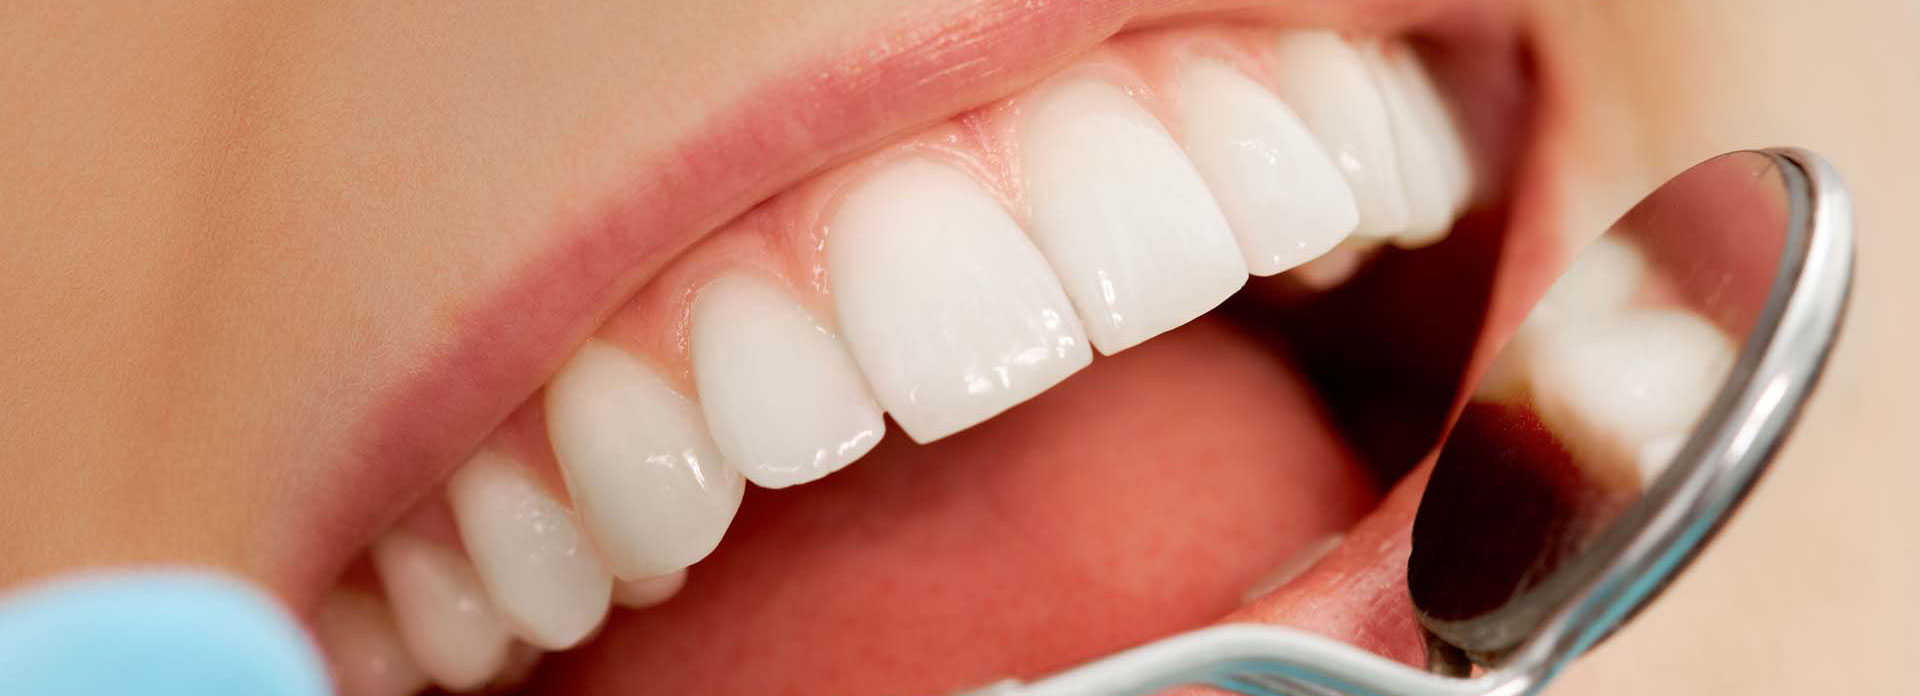 teeth of a smiling woman